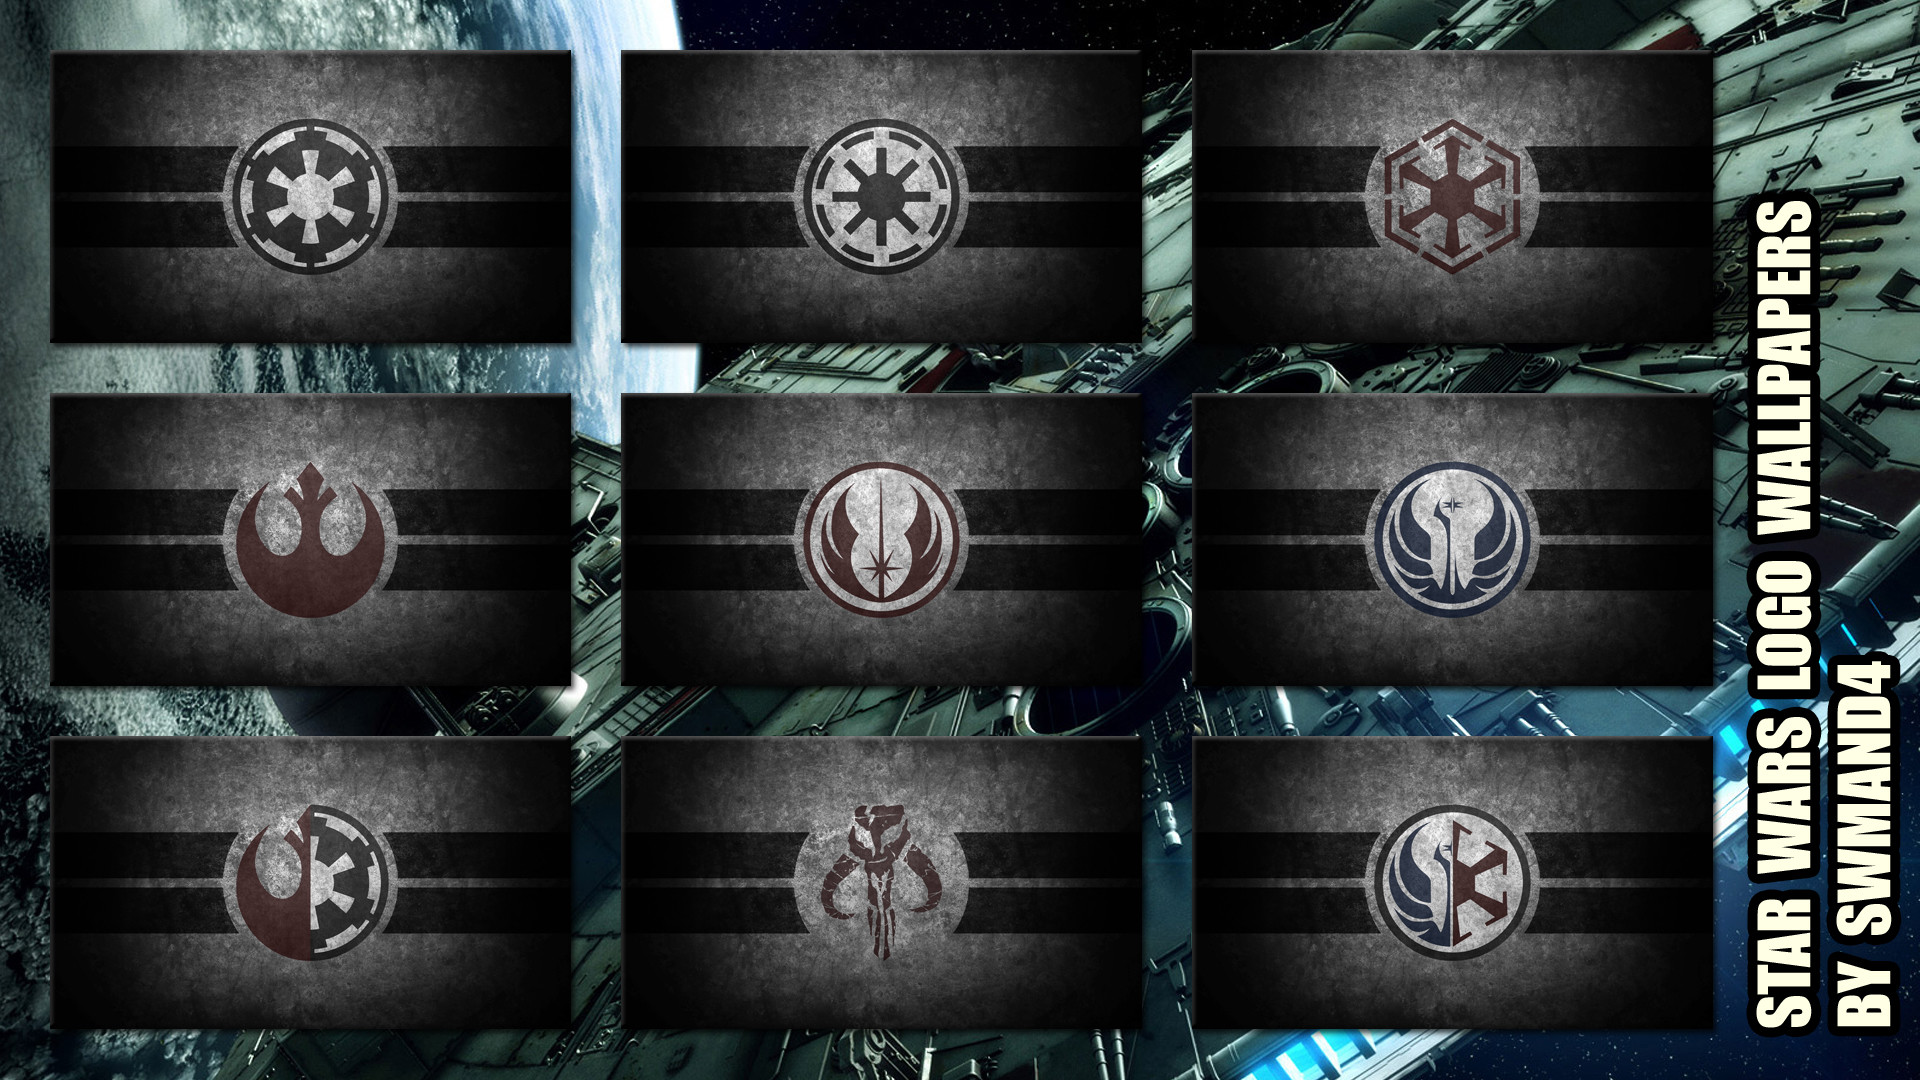 1920x1080 Star Wars Logos Wallpapers by swmand4 Star Wars Logos Wallpapers by swmand4